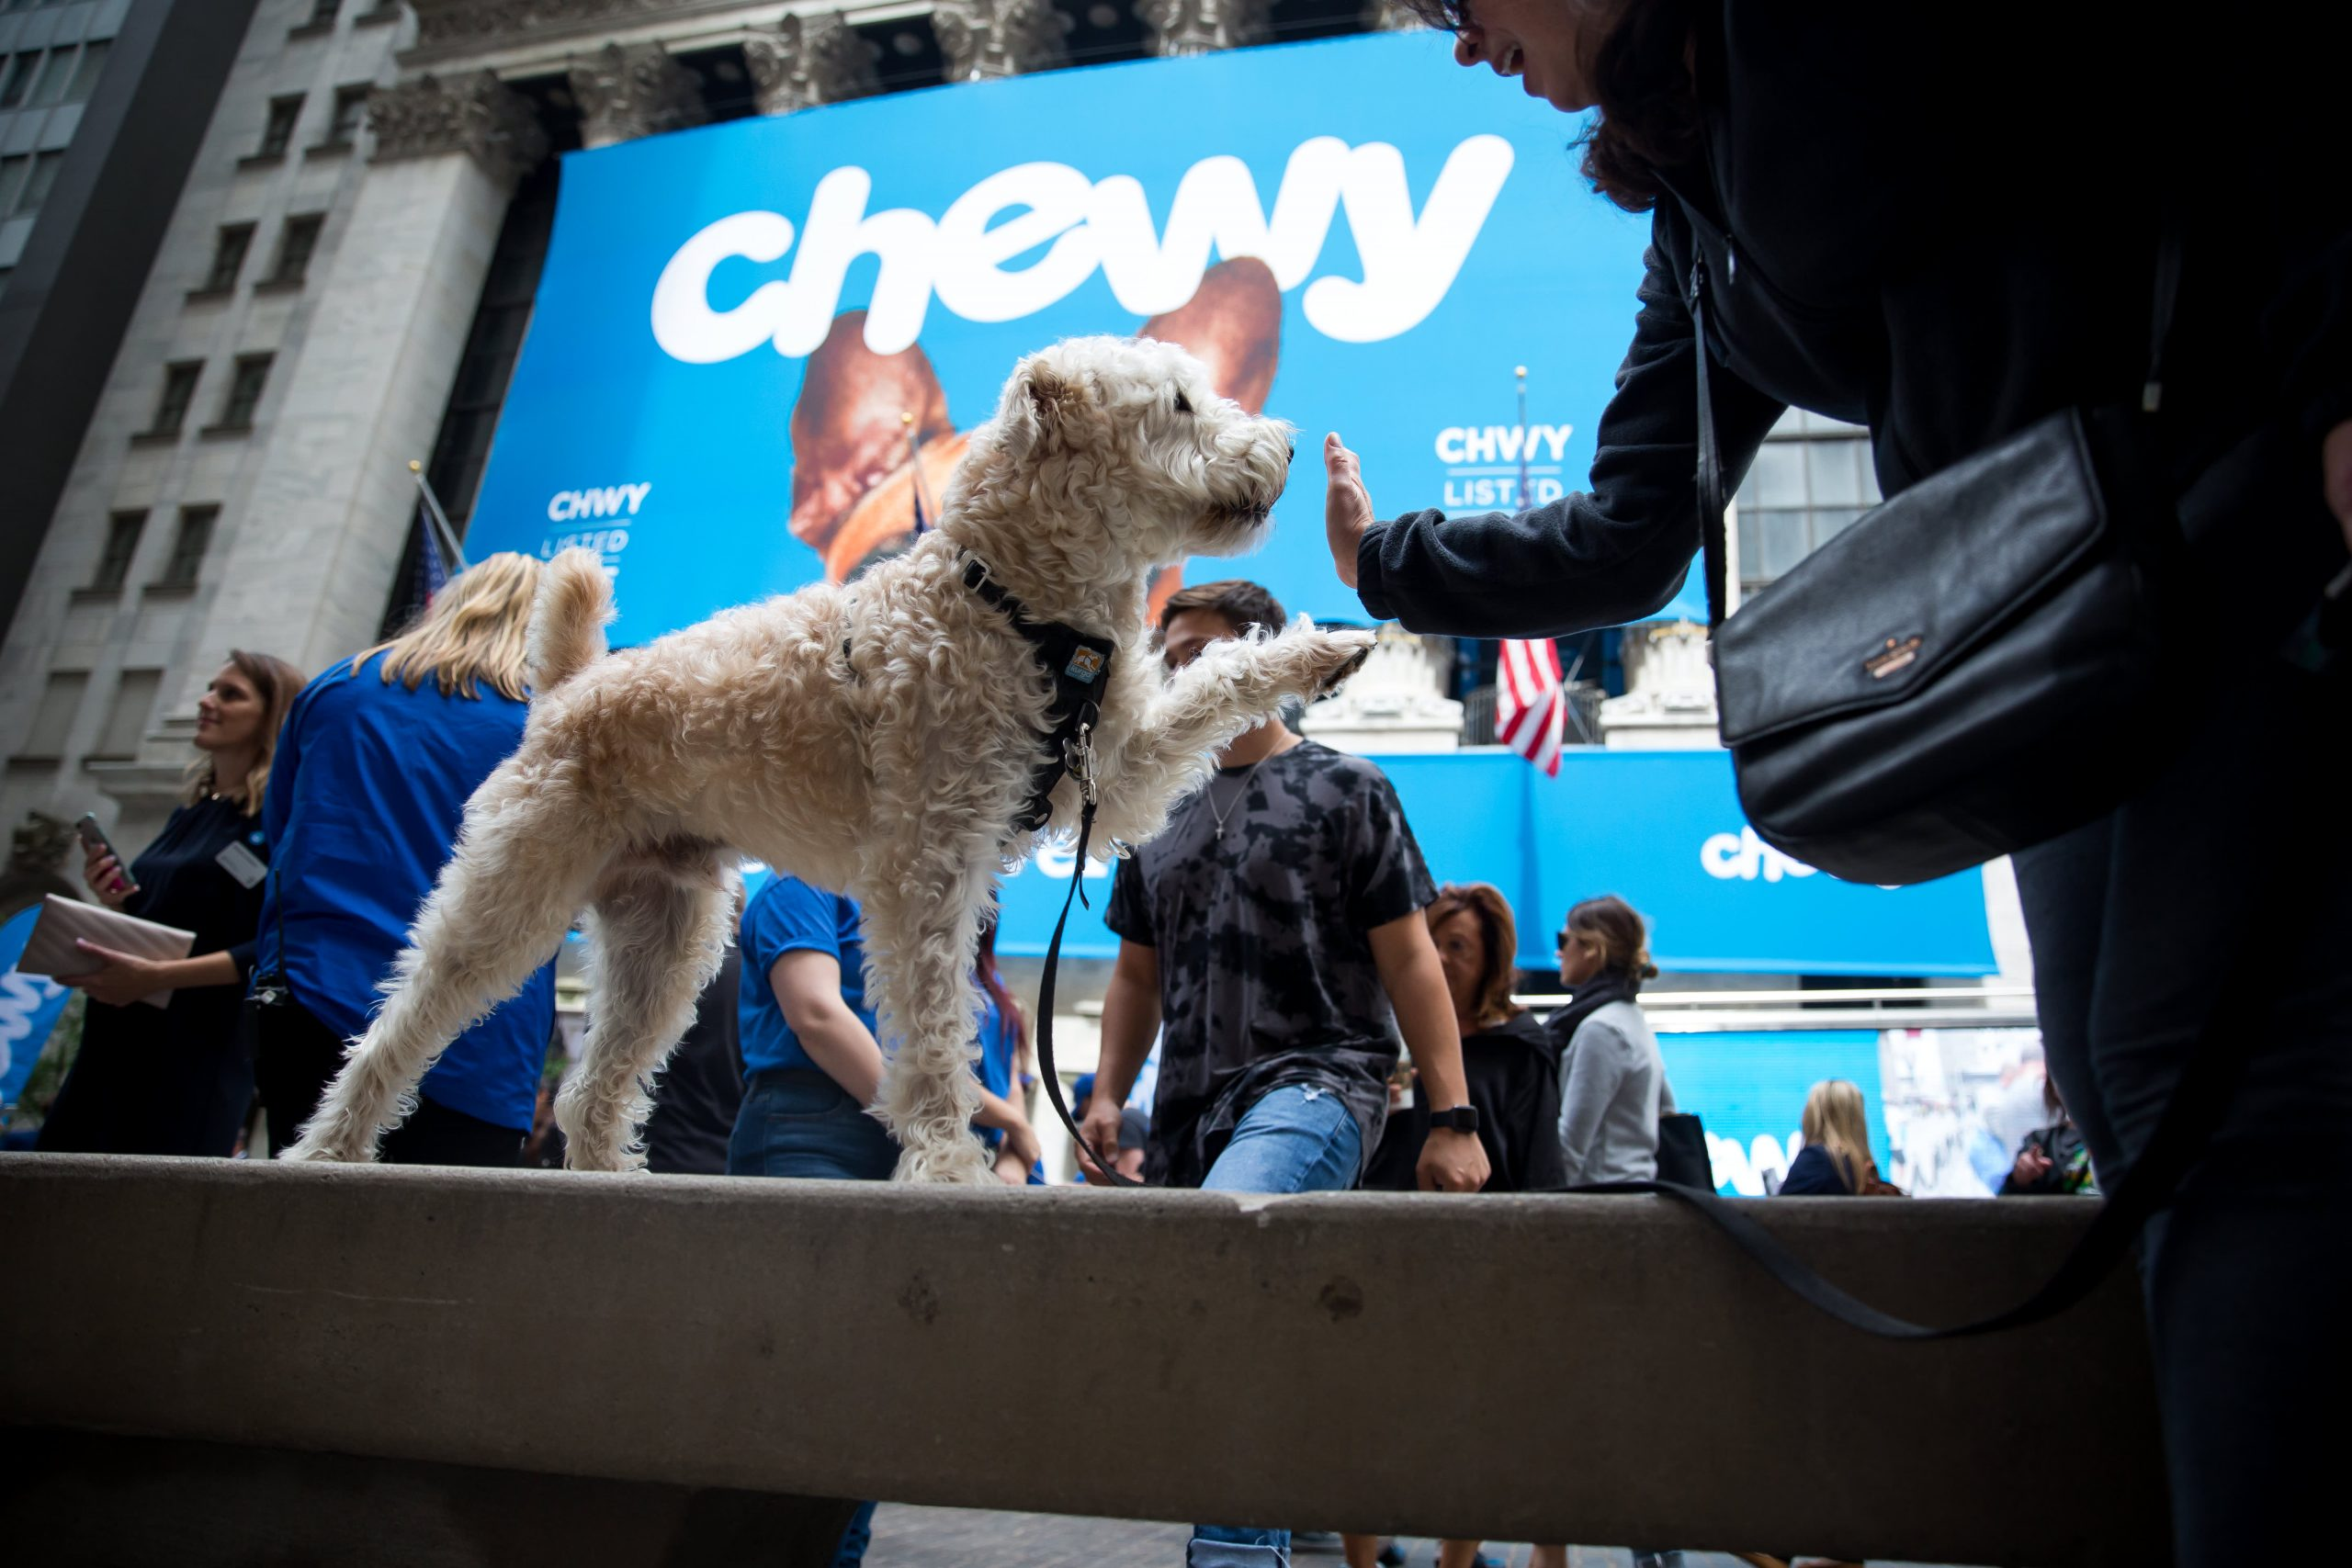 Stocks making the biggest moves after hours: Chewy, Dave & Busters, Vertex Pharmaceuticals and more